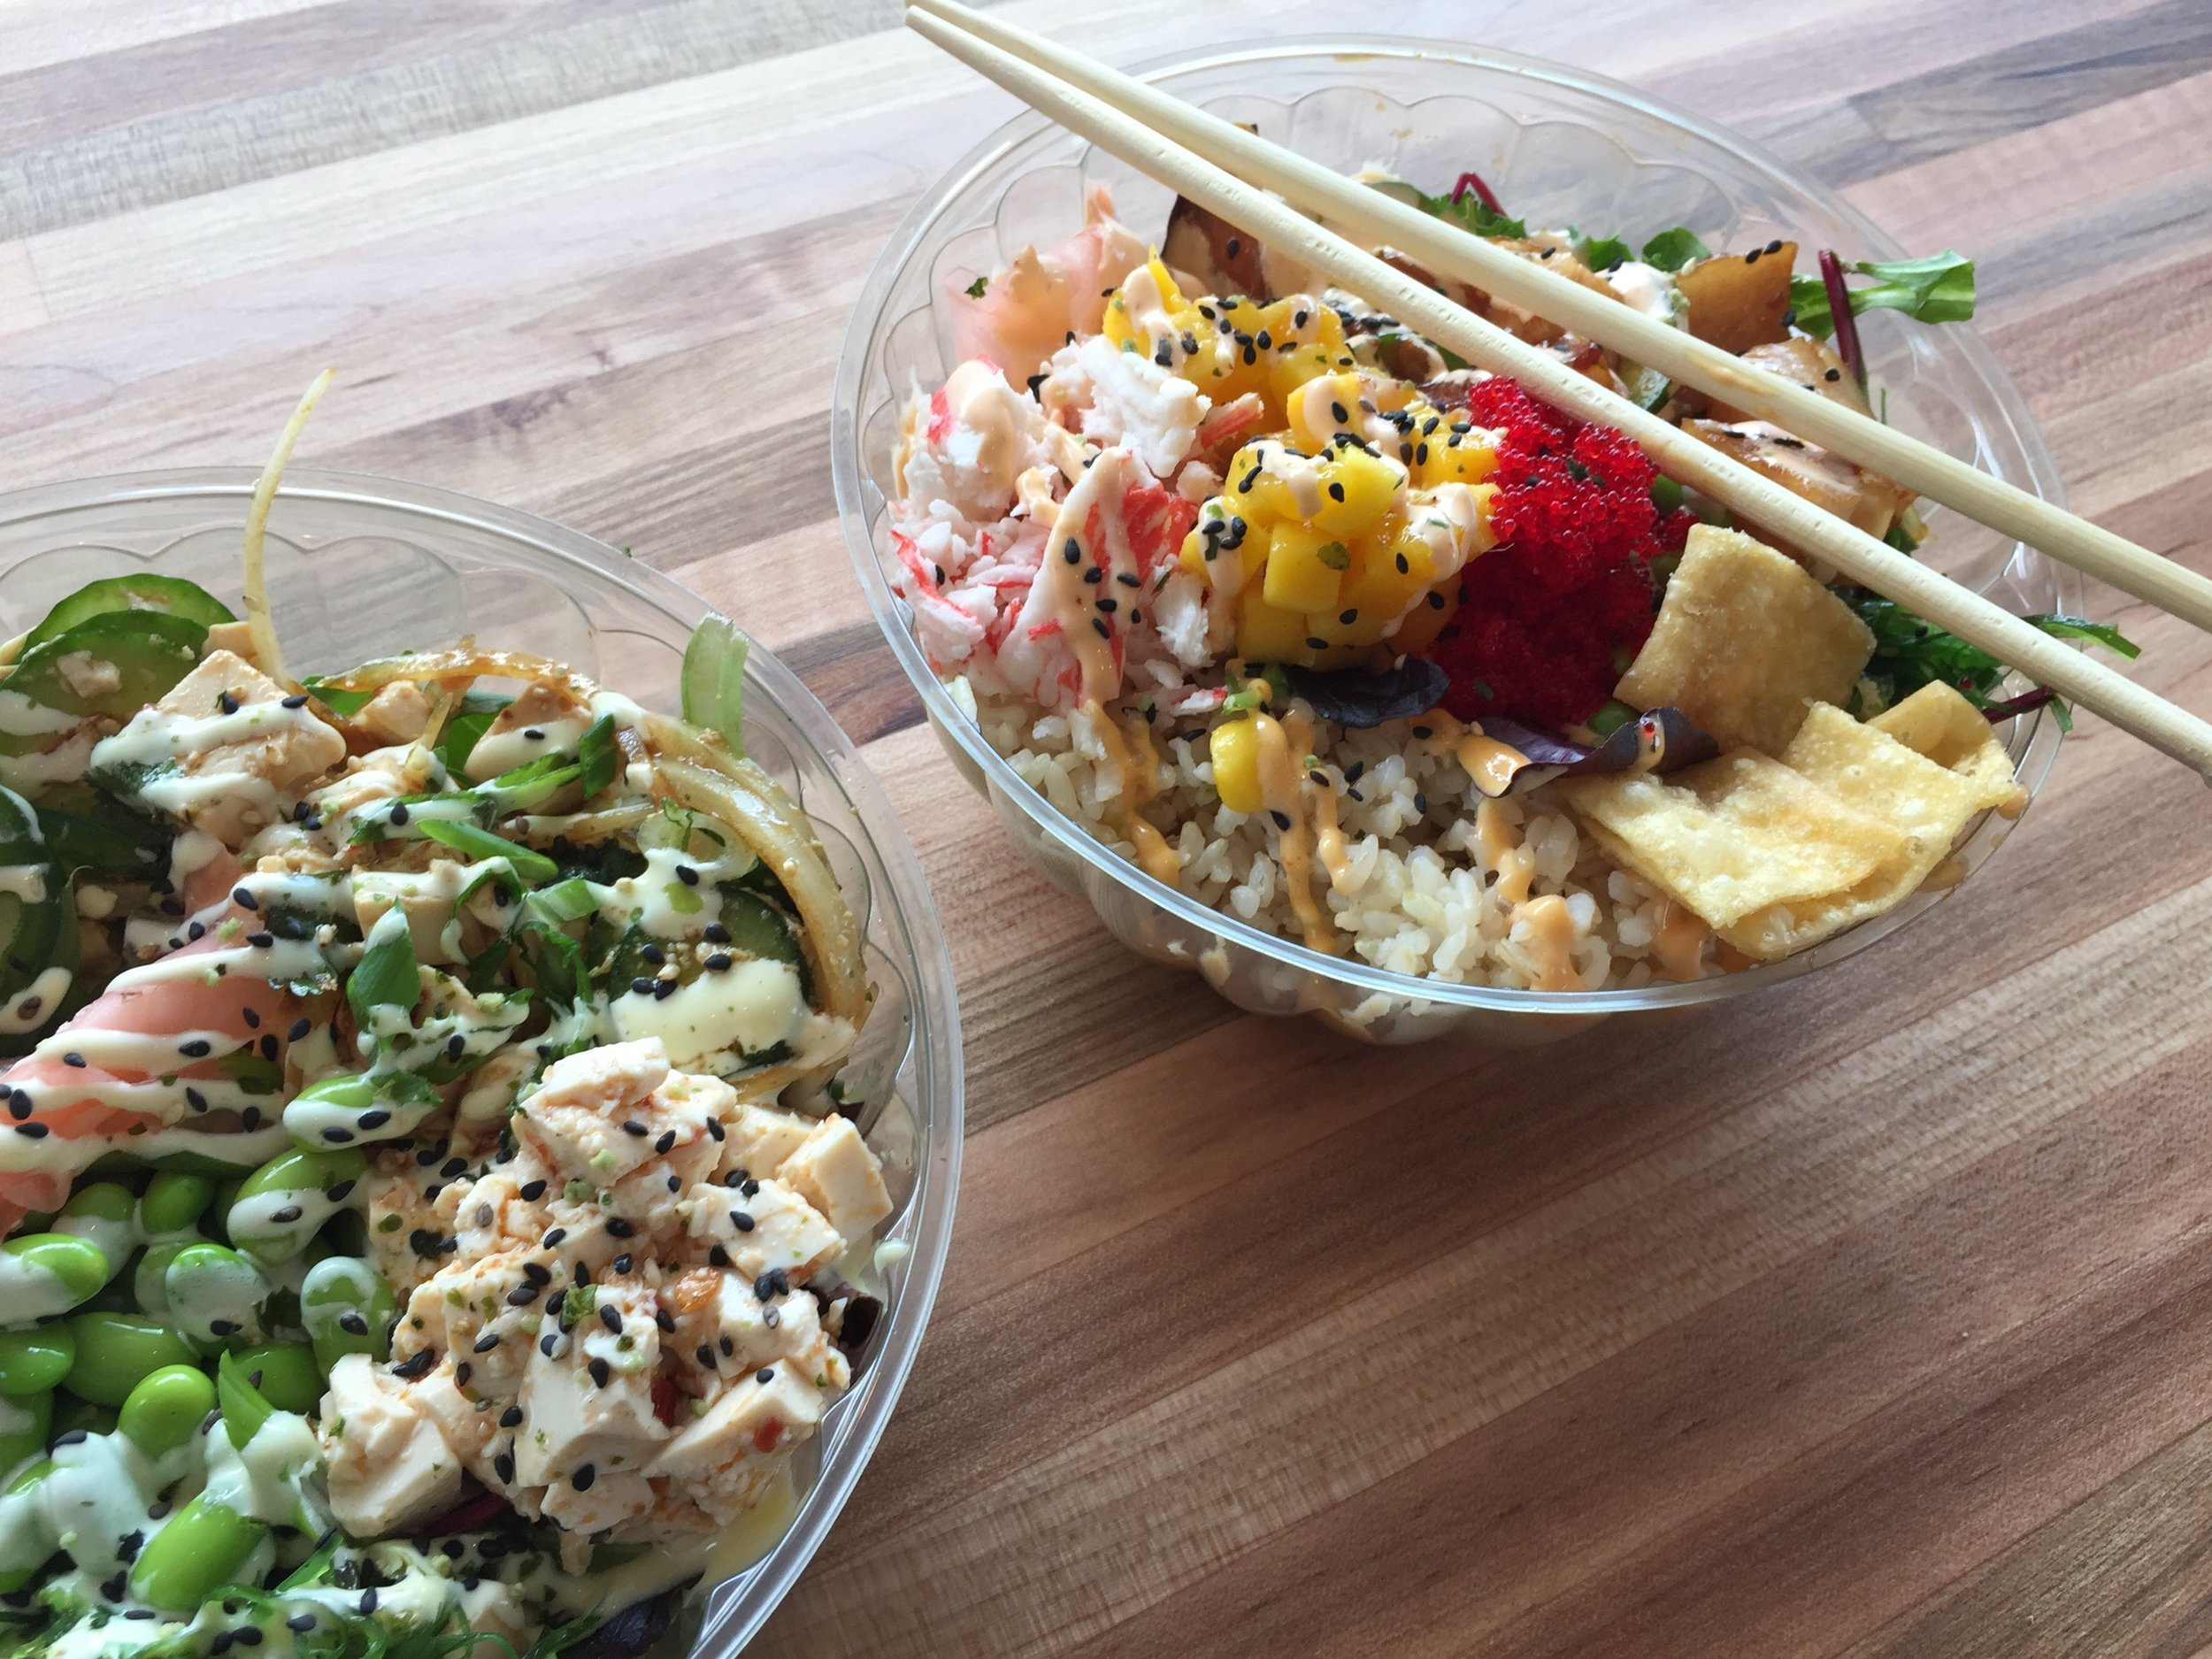 Poke Loa - Poke Loa bowls are served cafeteria-style which gives you a lot of control over what you put in them. Since I'm vegan, I skip the Poke all together (although they do have a tofu option), but I never feel like I'm missing out.